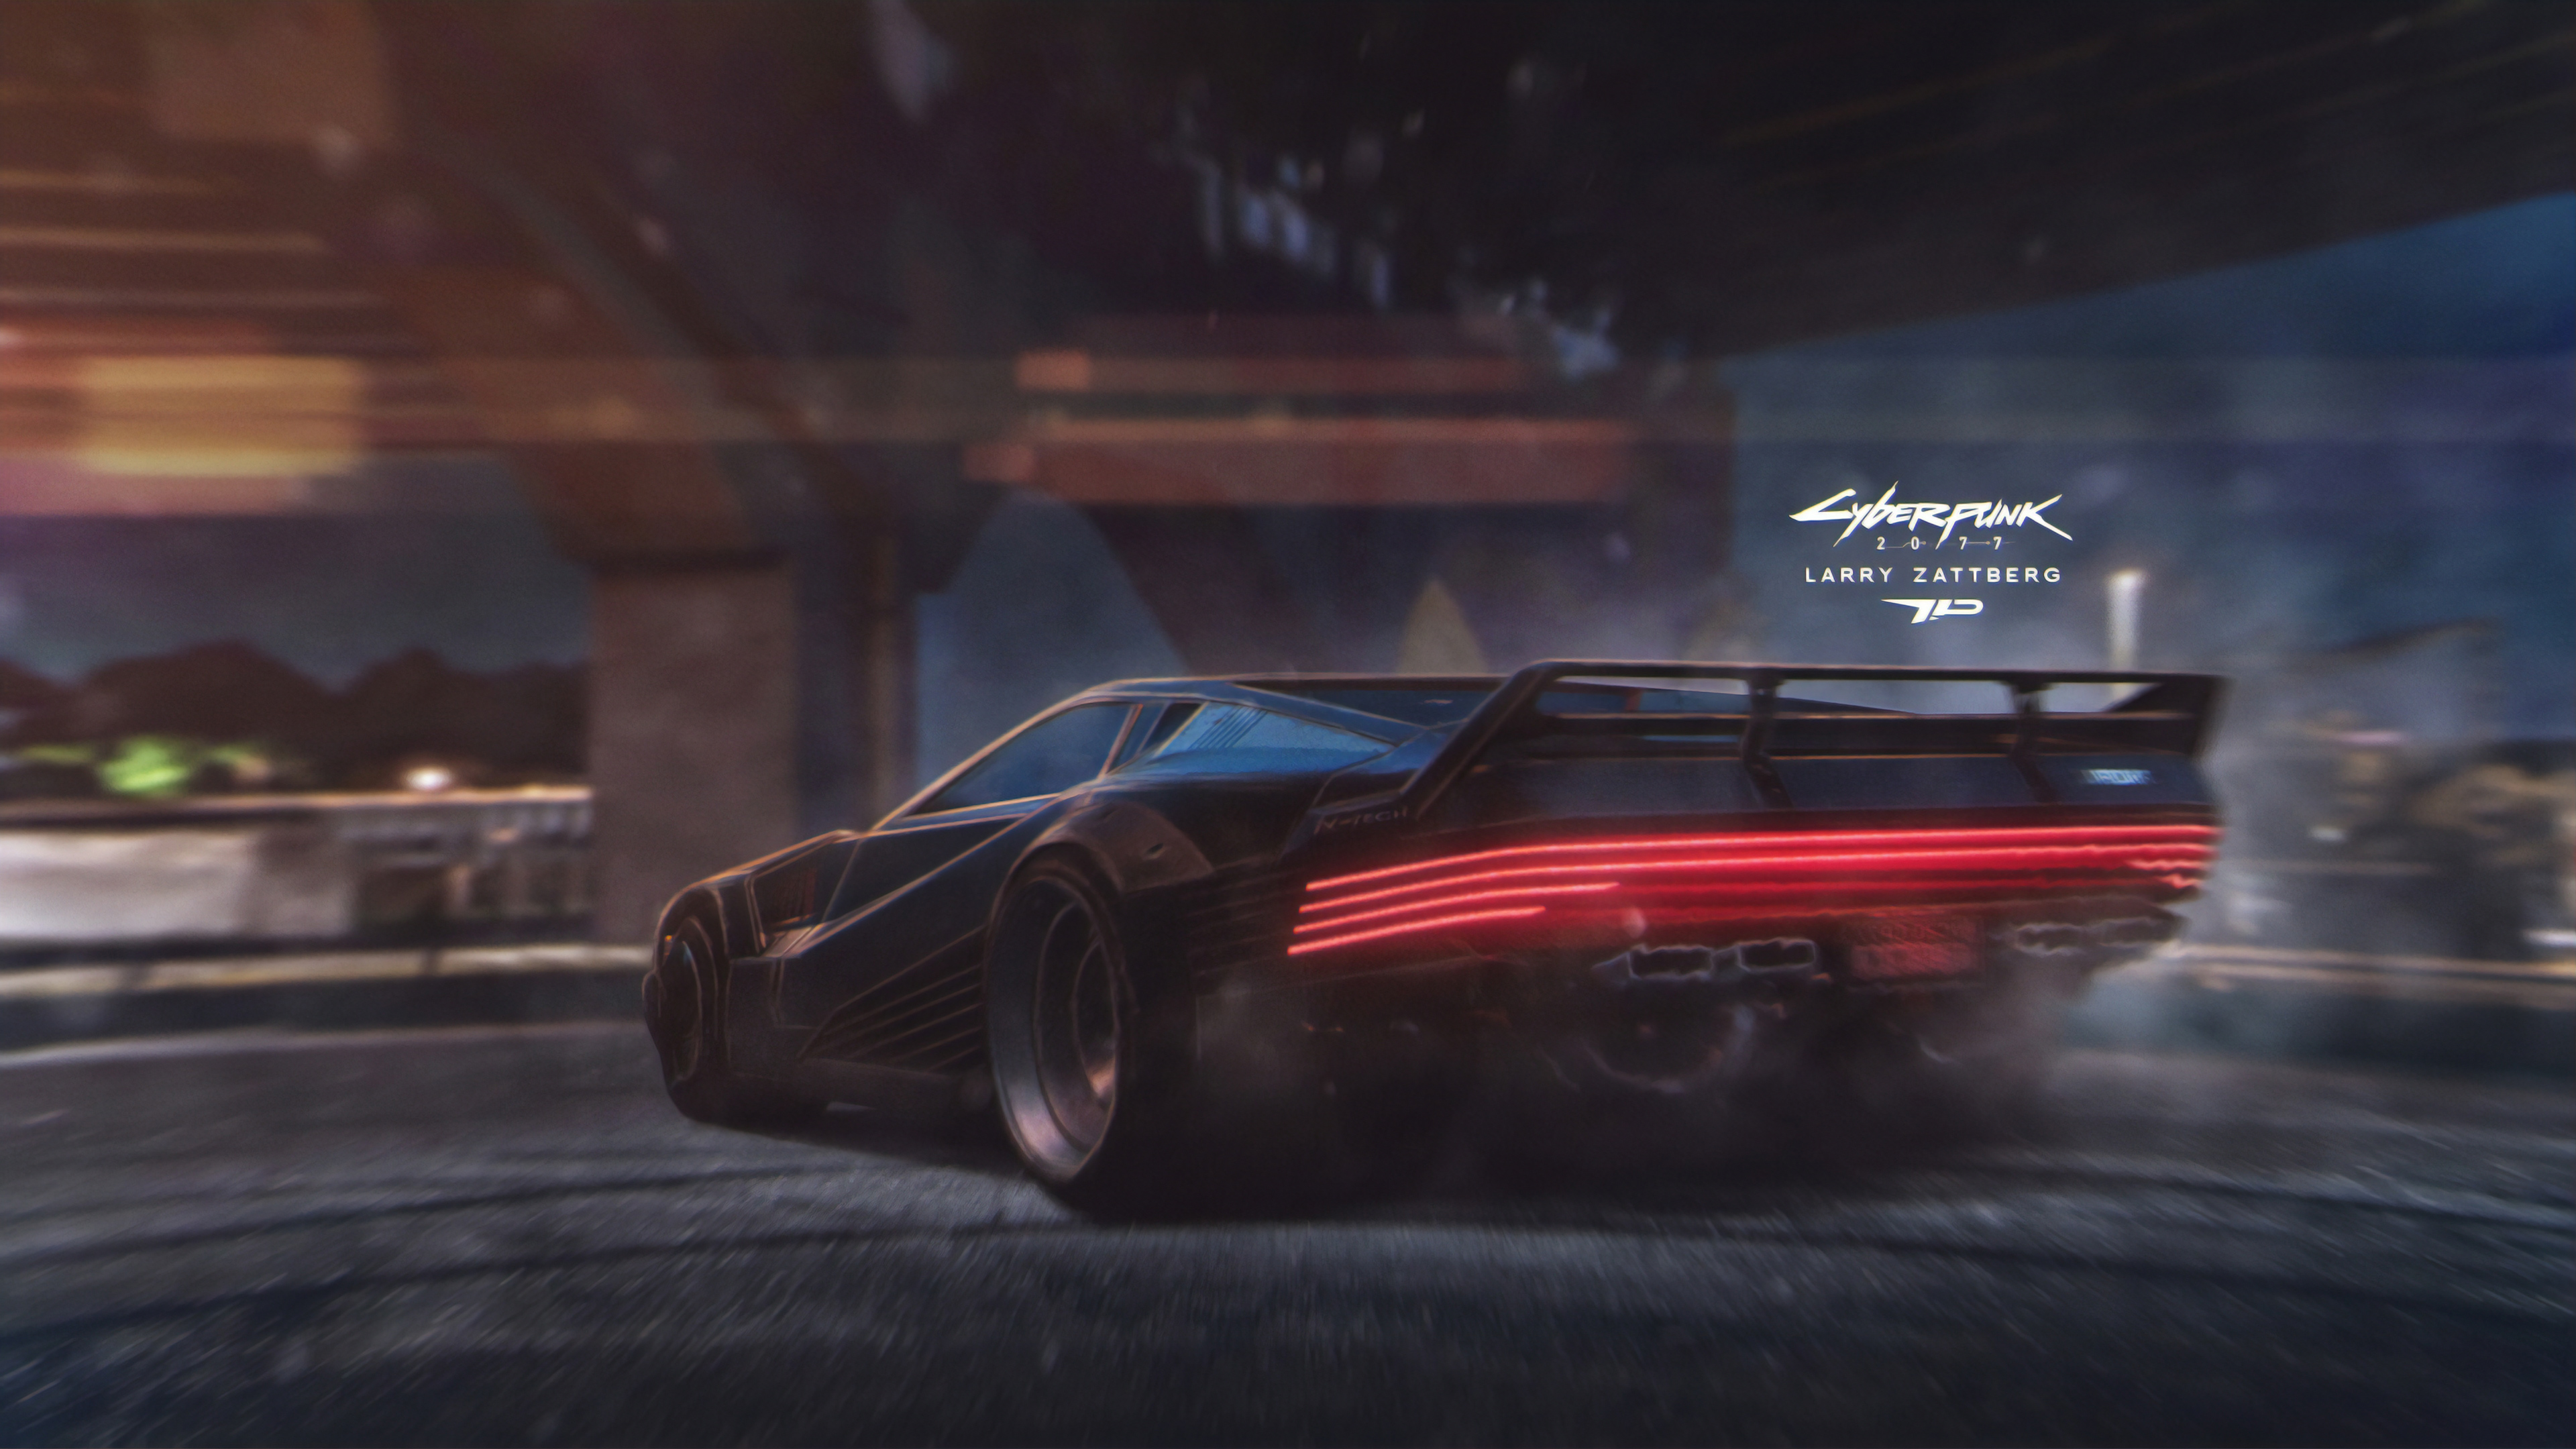 Cyberpunk 2077 Car 4k Hd Games 4k Wallpapers Images Backgrounds Photos And Pictures